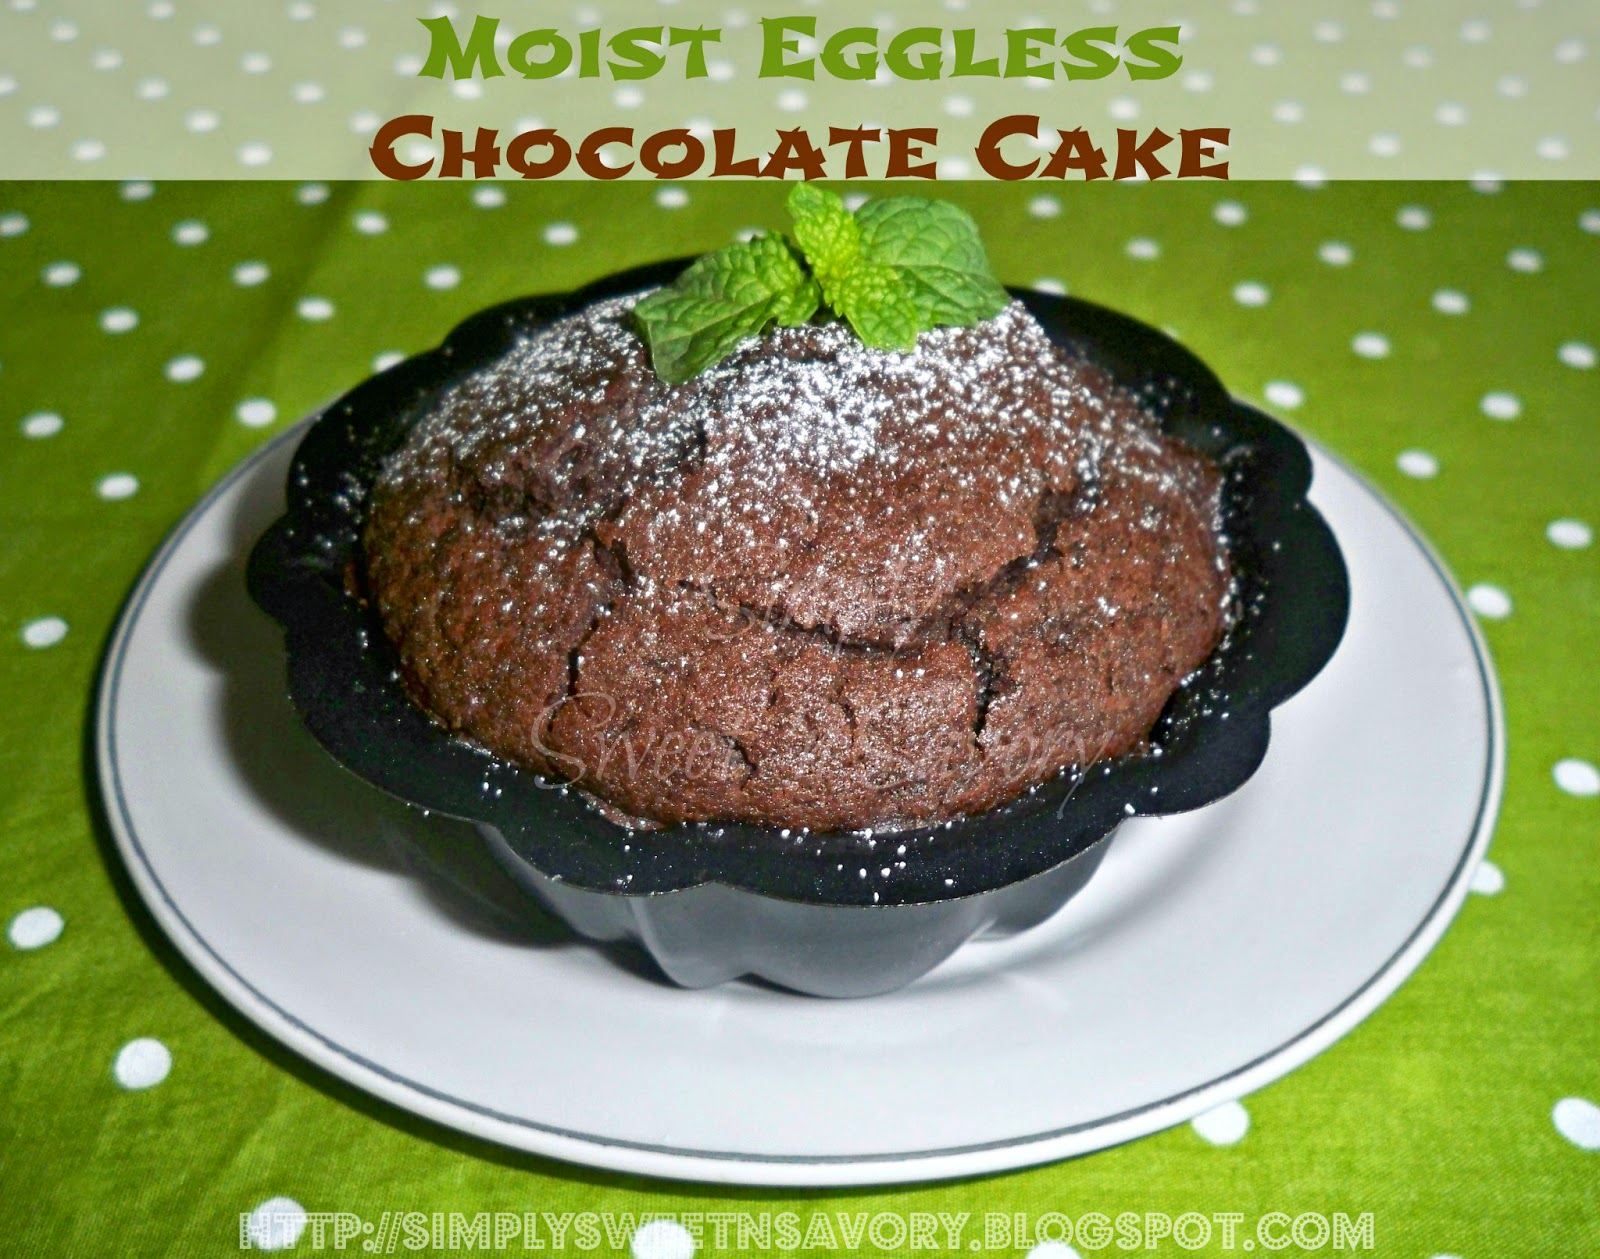 Images Of Eggless Chocolate Cake : Simply Sweet  n Savory: Moist Eggless Chocolate Cake